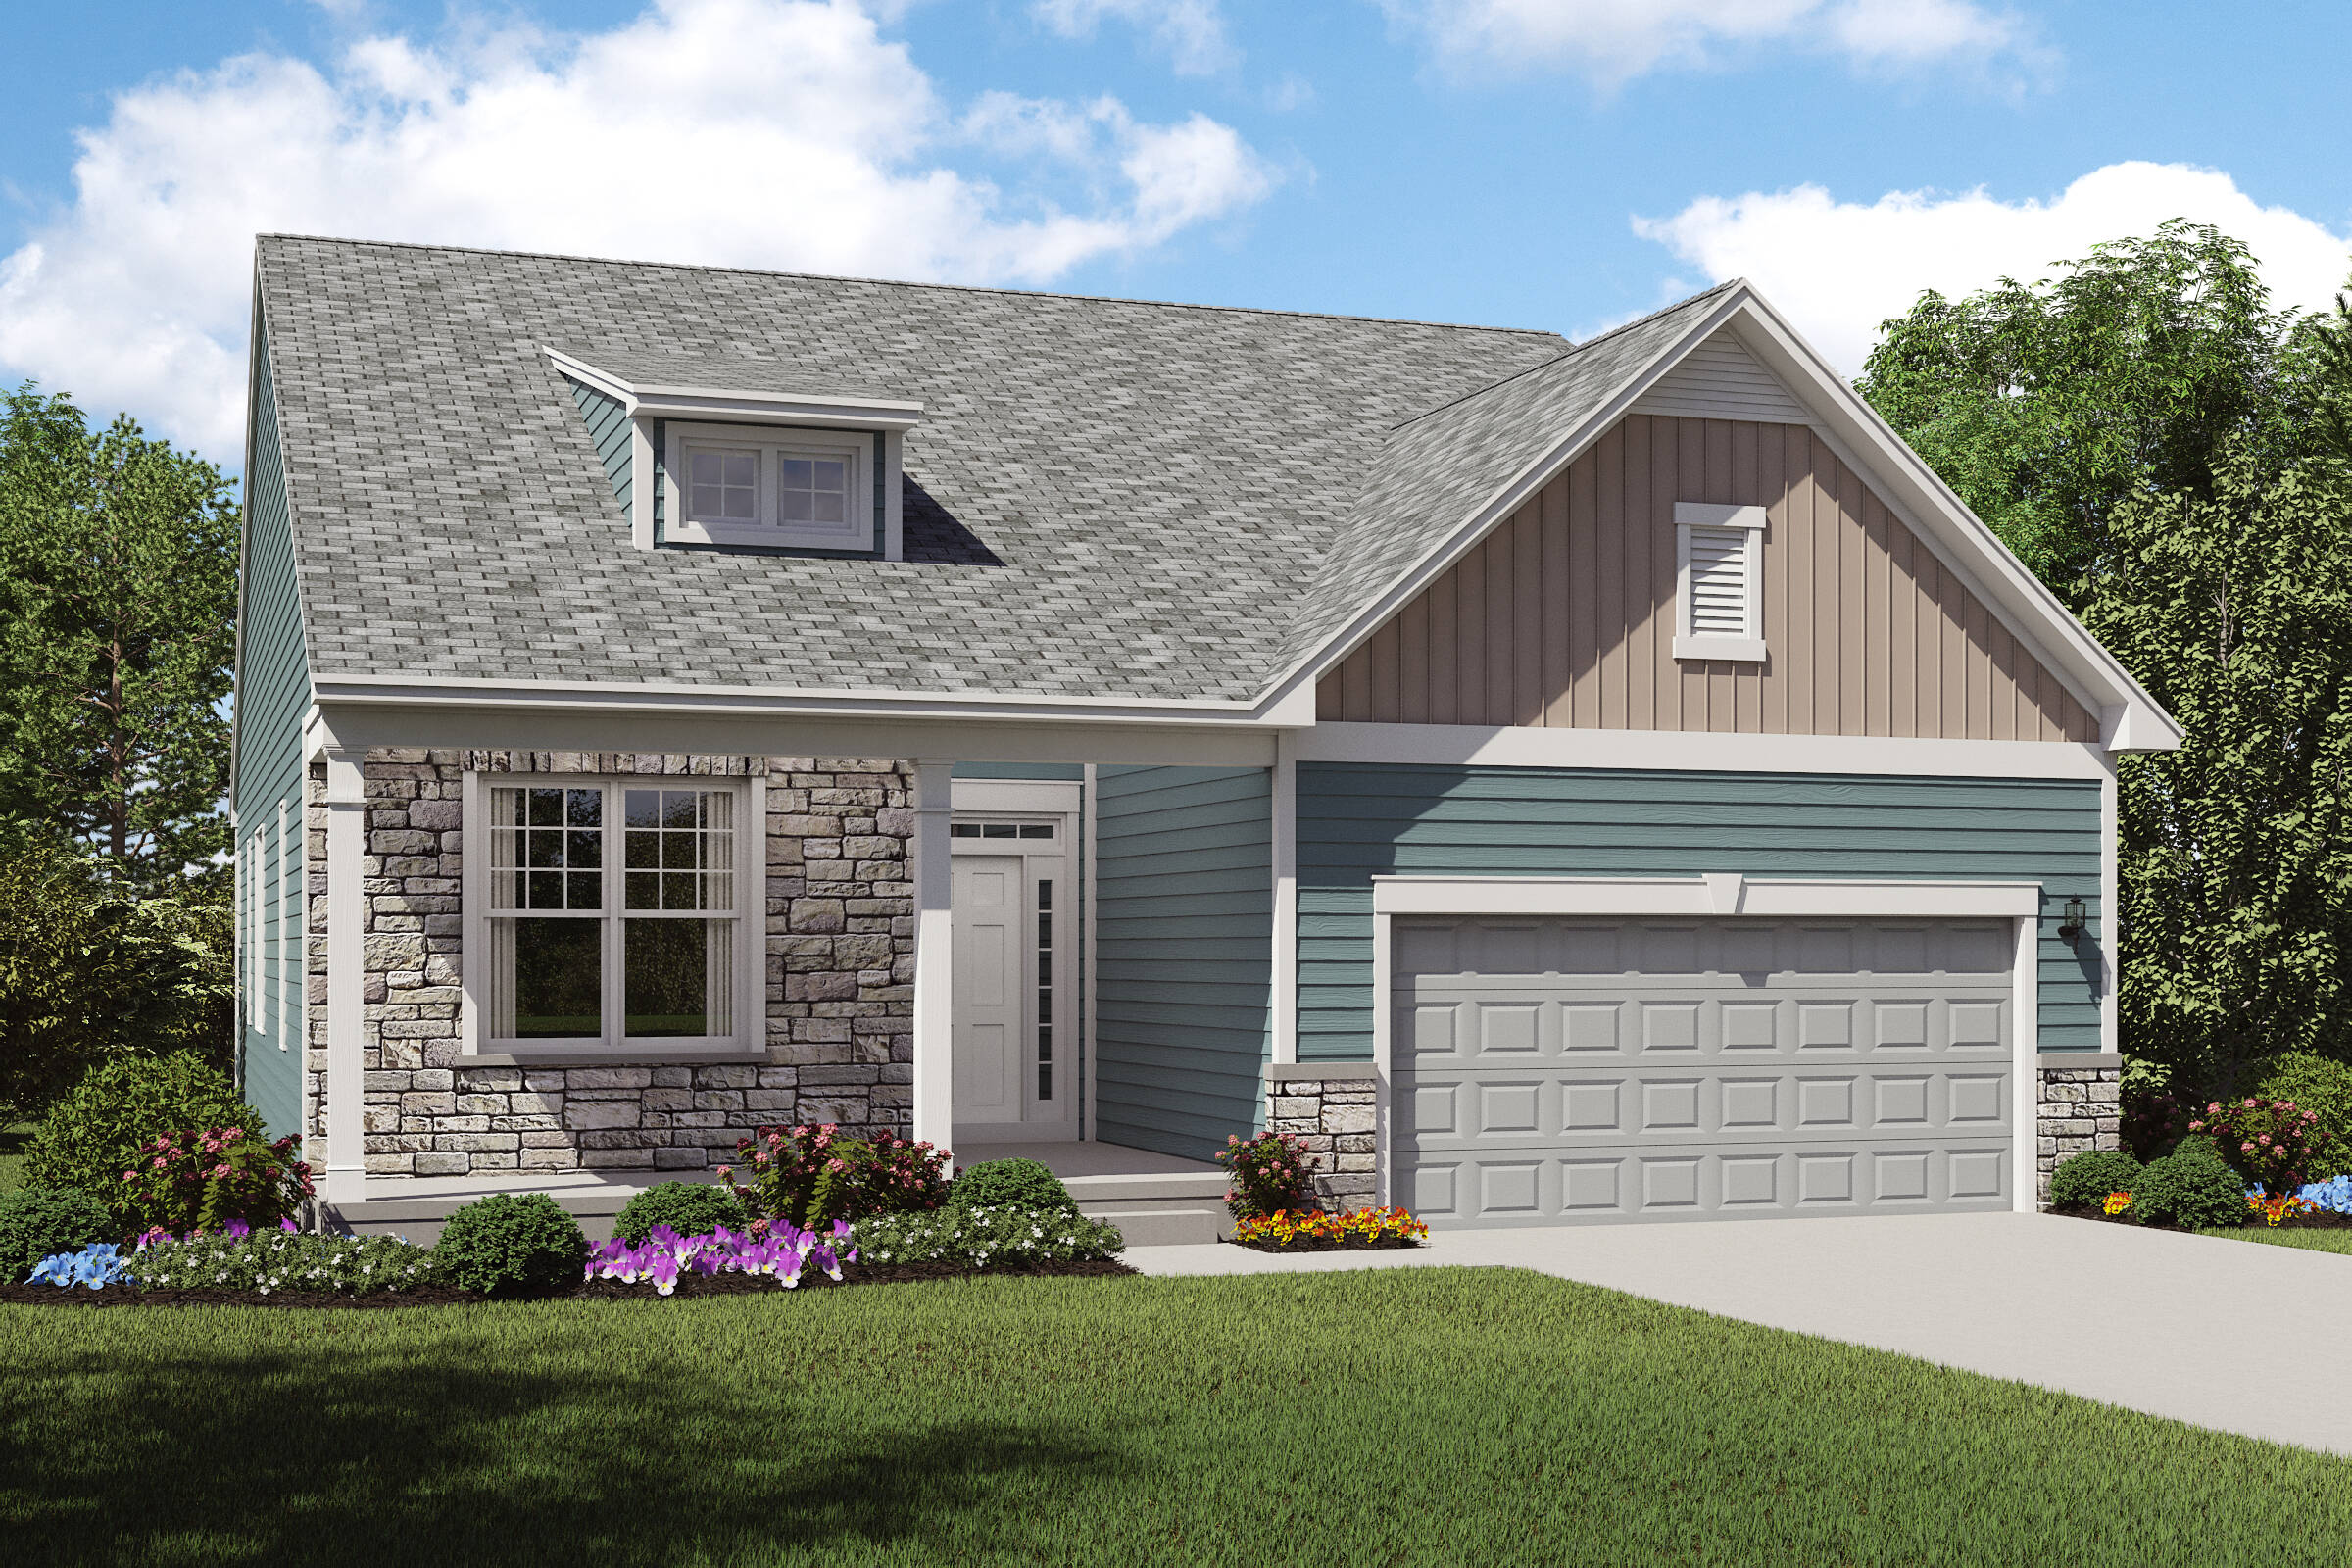 loren d2 stone new home ranch front cleveland ohio